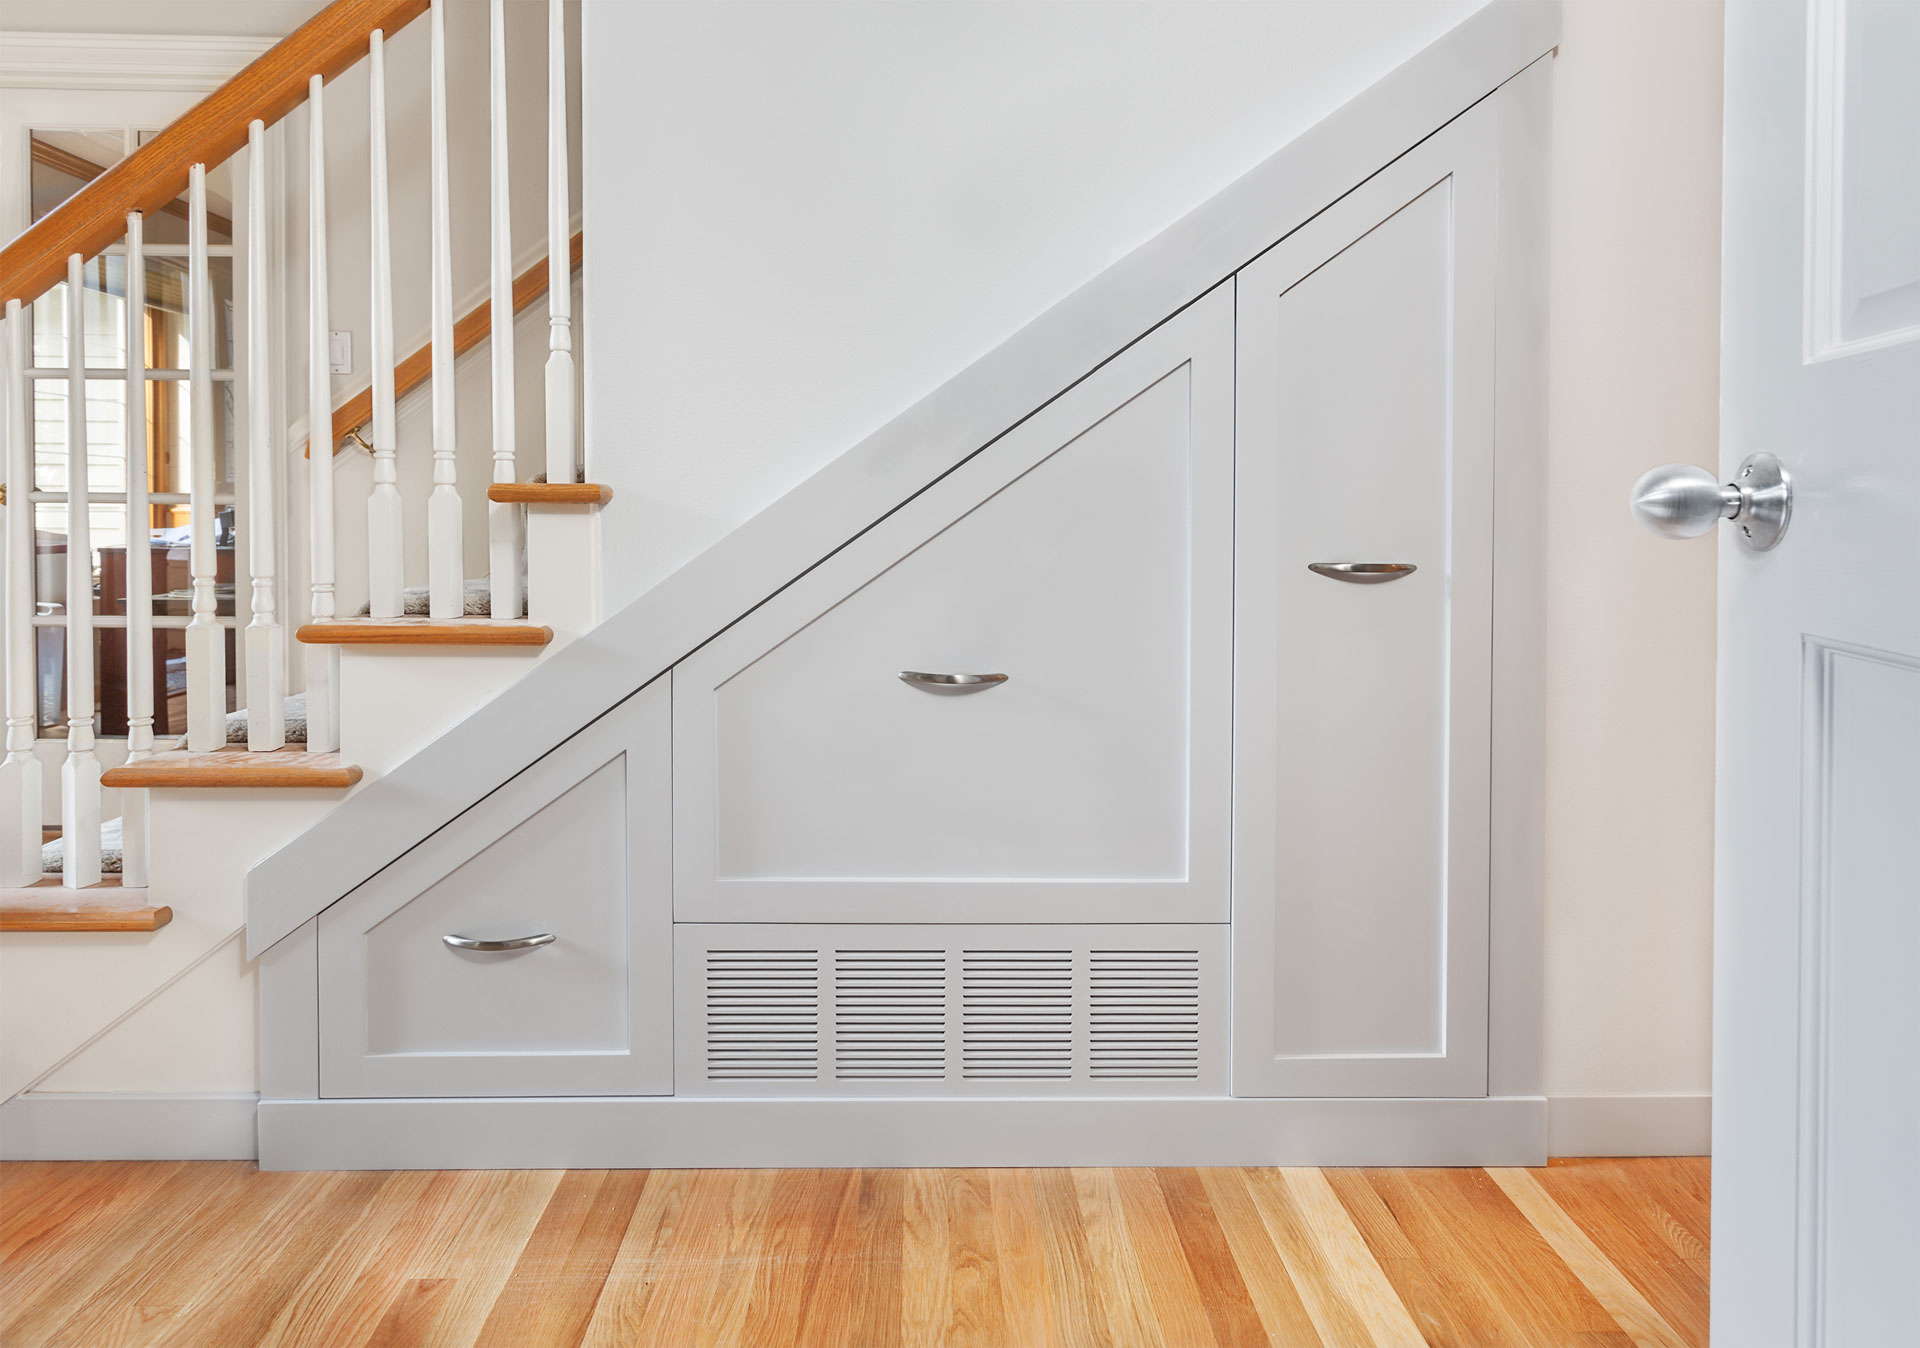 Under The Stairs Storage How To Make Most Out Of Every Inch Your Home Life Blog